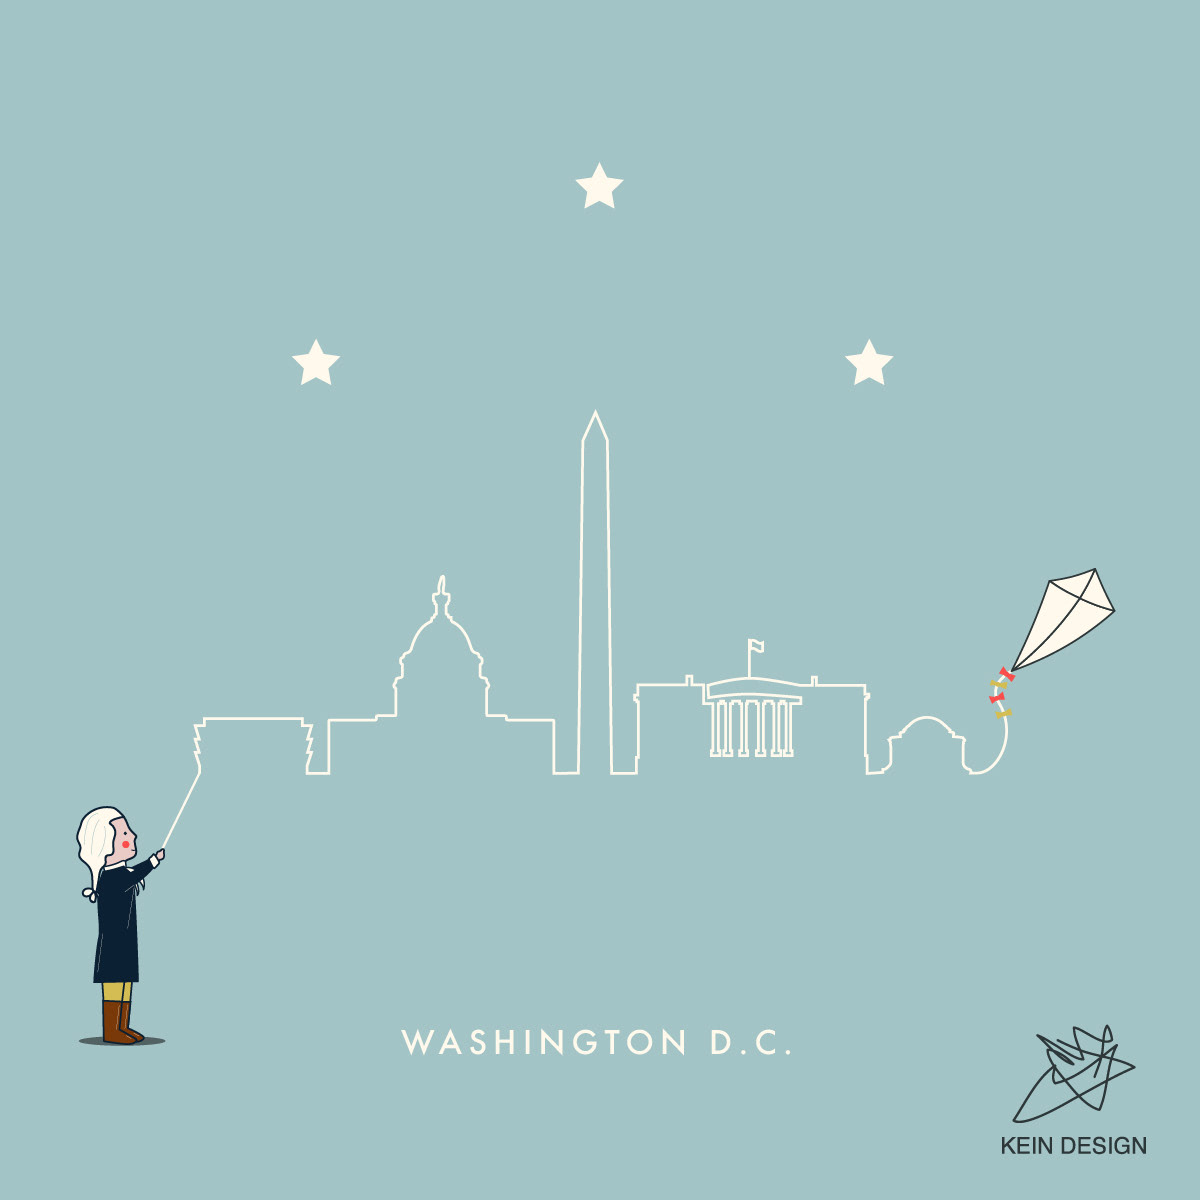 Georges Washington holding kite which rope is outlining the skyline of Washington D.C.